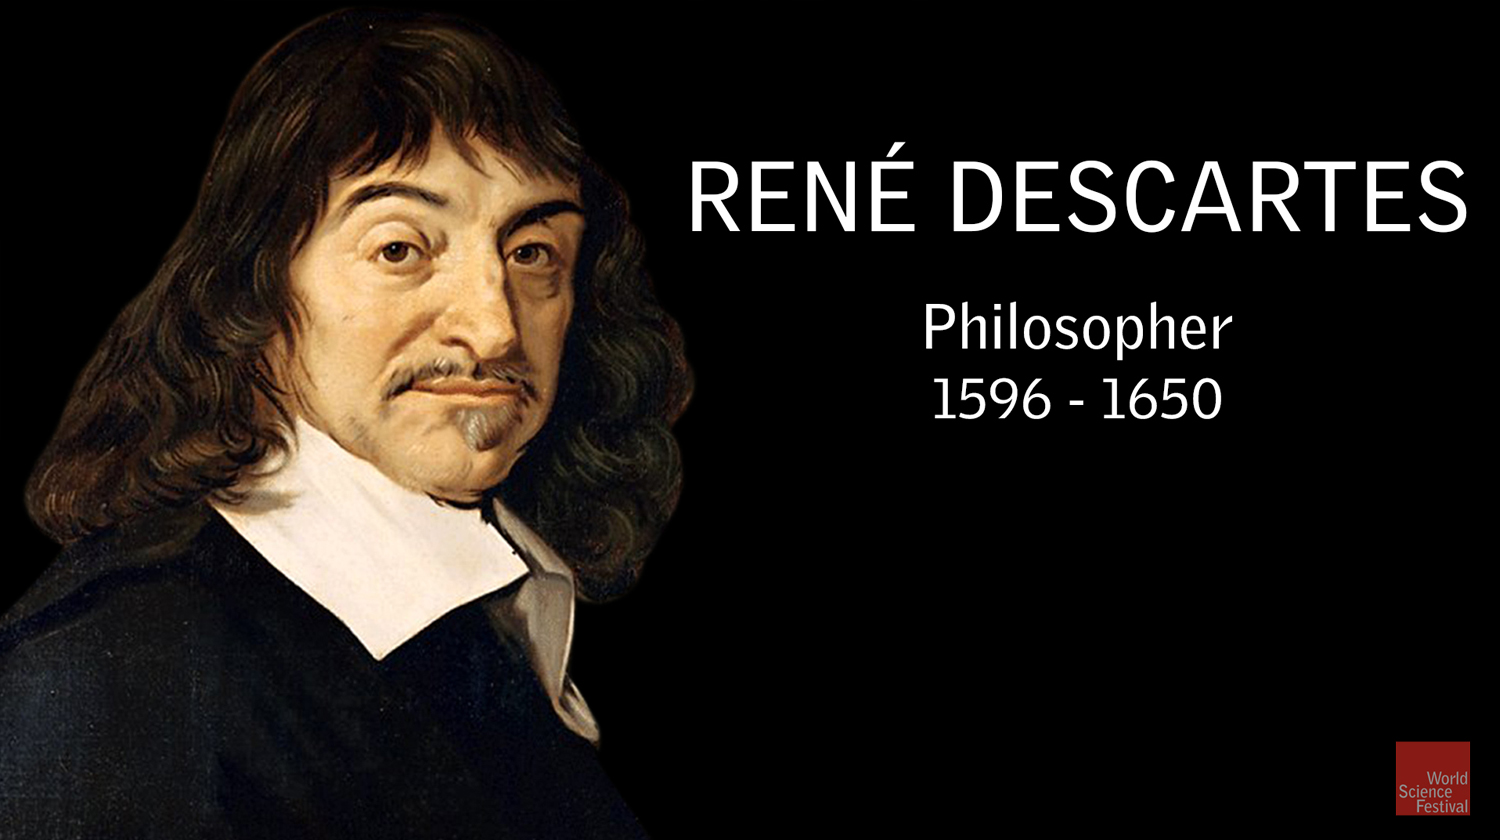 rene descartes mind body A stop-motion video i made for rhetoric class assignment in this video, i try to explain descartes' theory of dualism in terms everyone can understand.